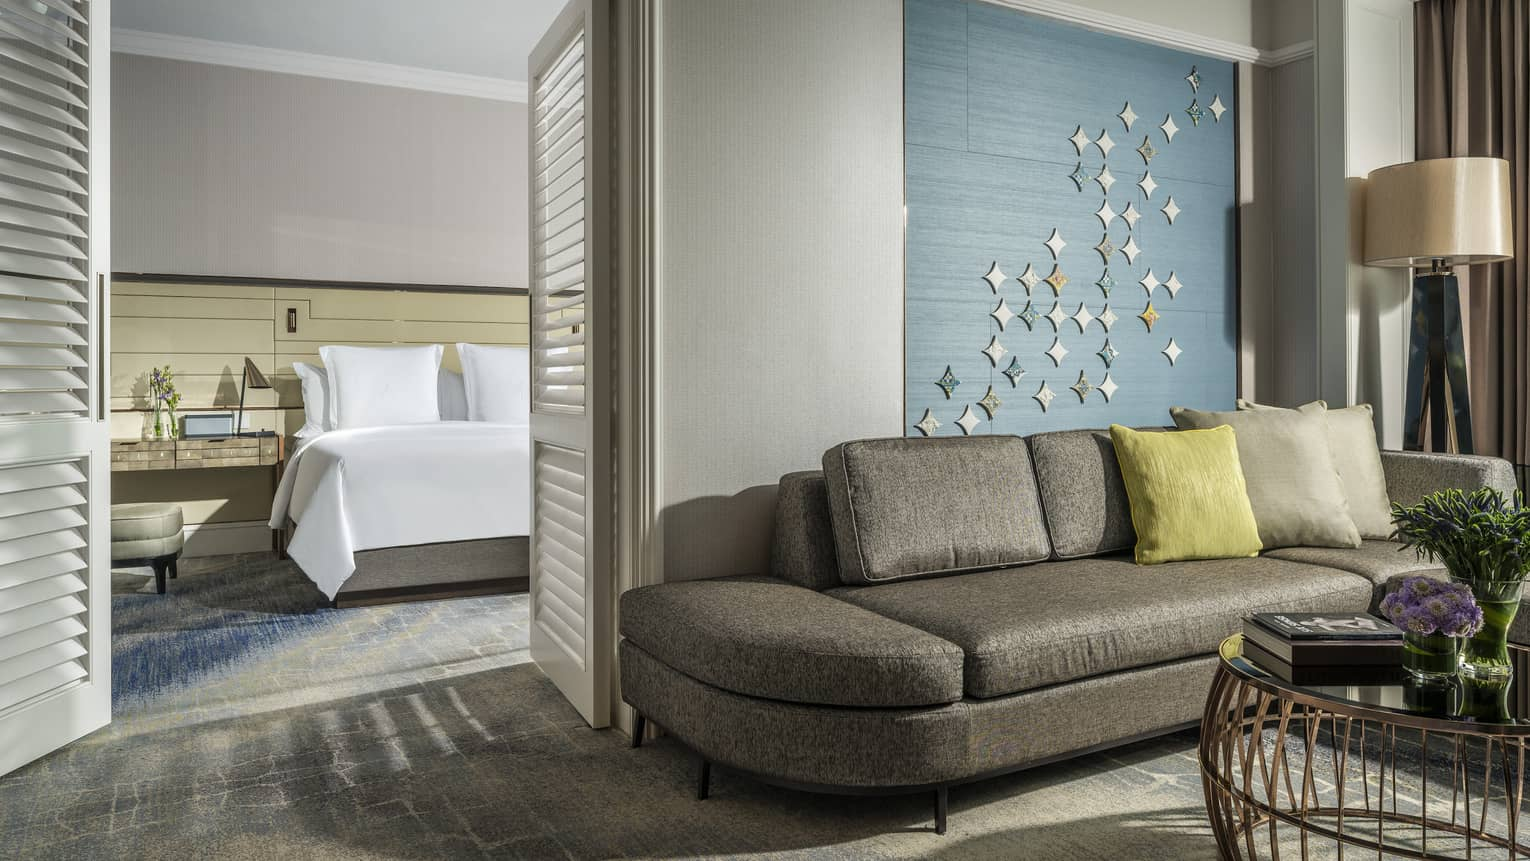 One Bedroom Suite bed in room behind wood shutters, modern grey sofa under textiles